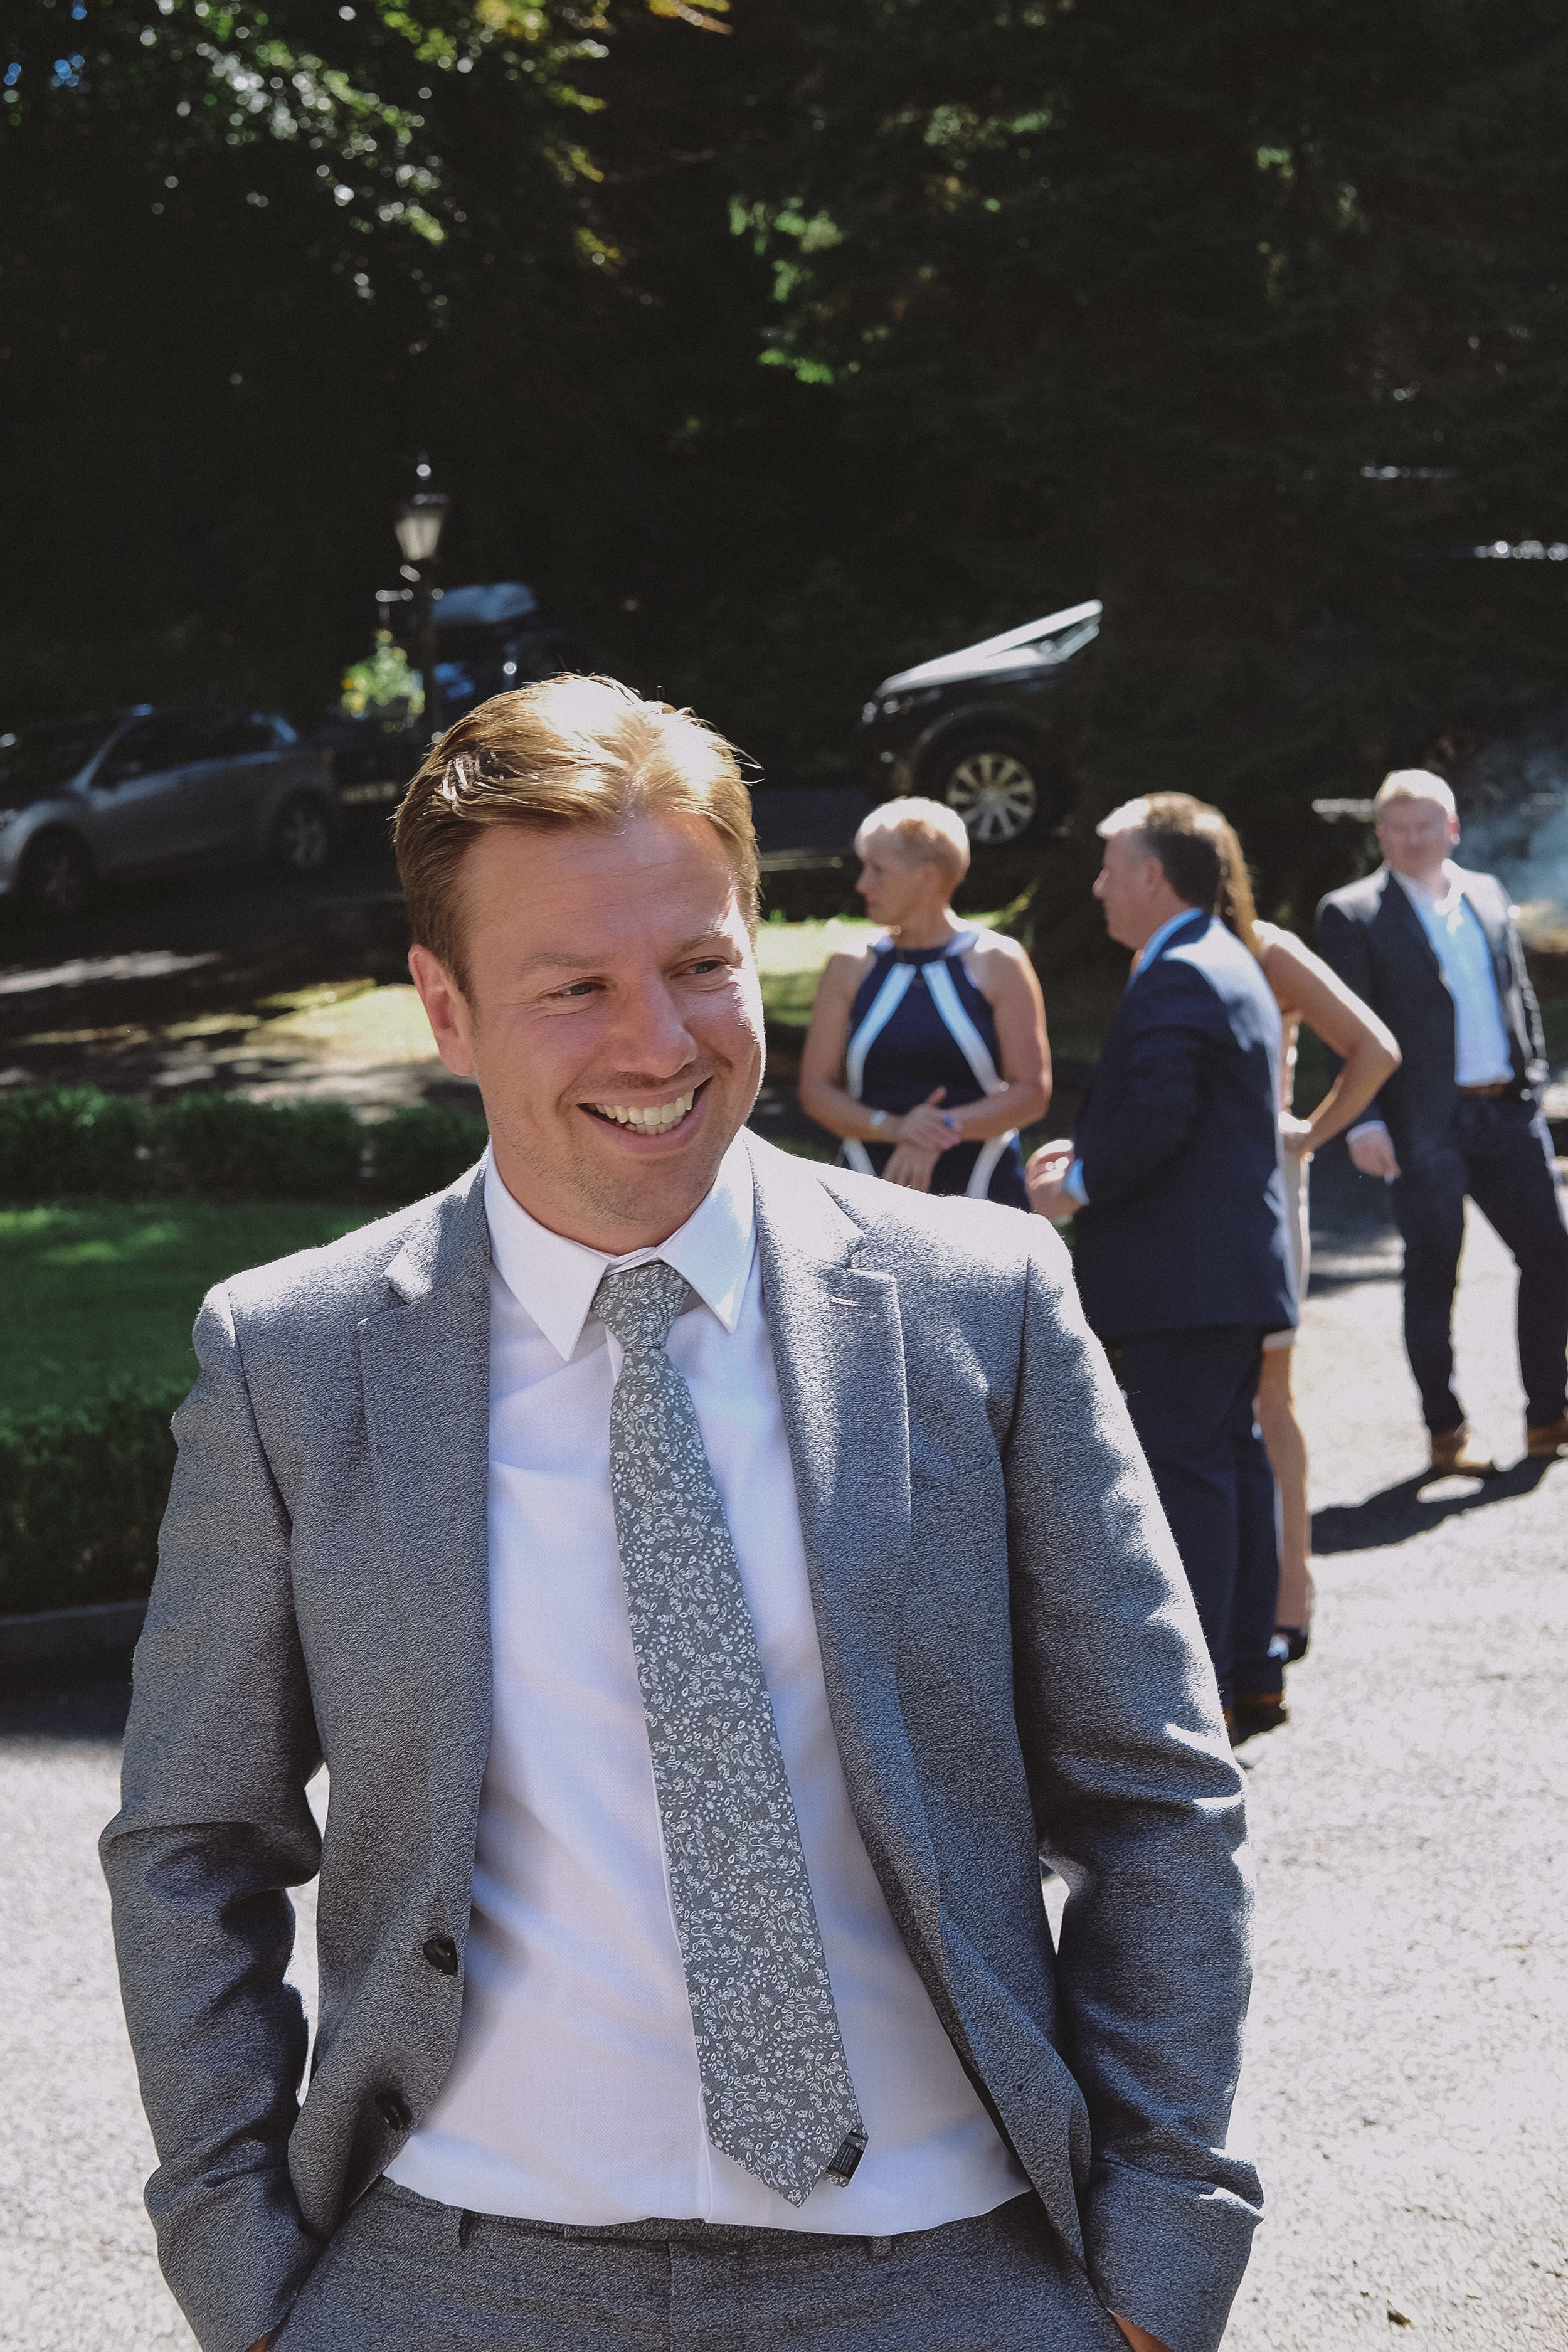 The groom smiles with his guests before his wedding ceremony at Julia and Daren's Lake District wedding by Barry Forshaw